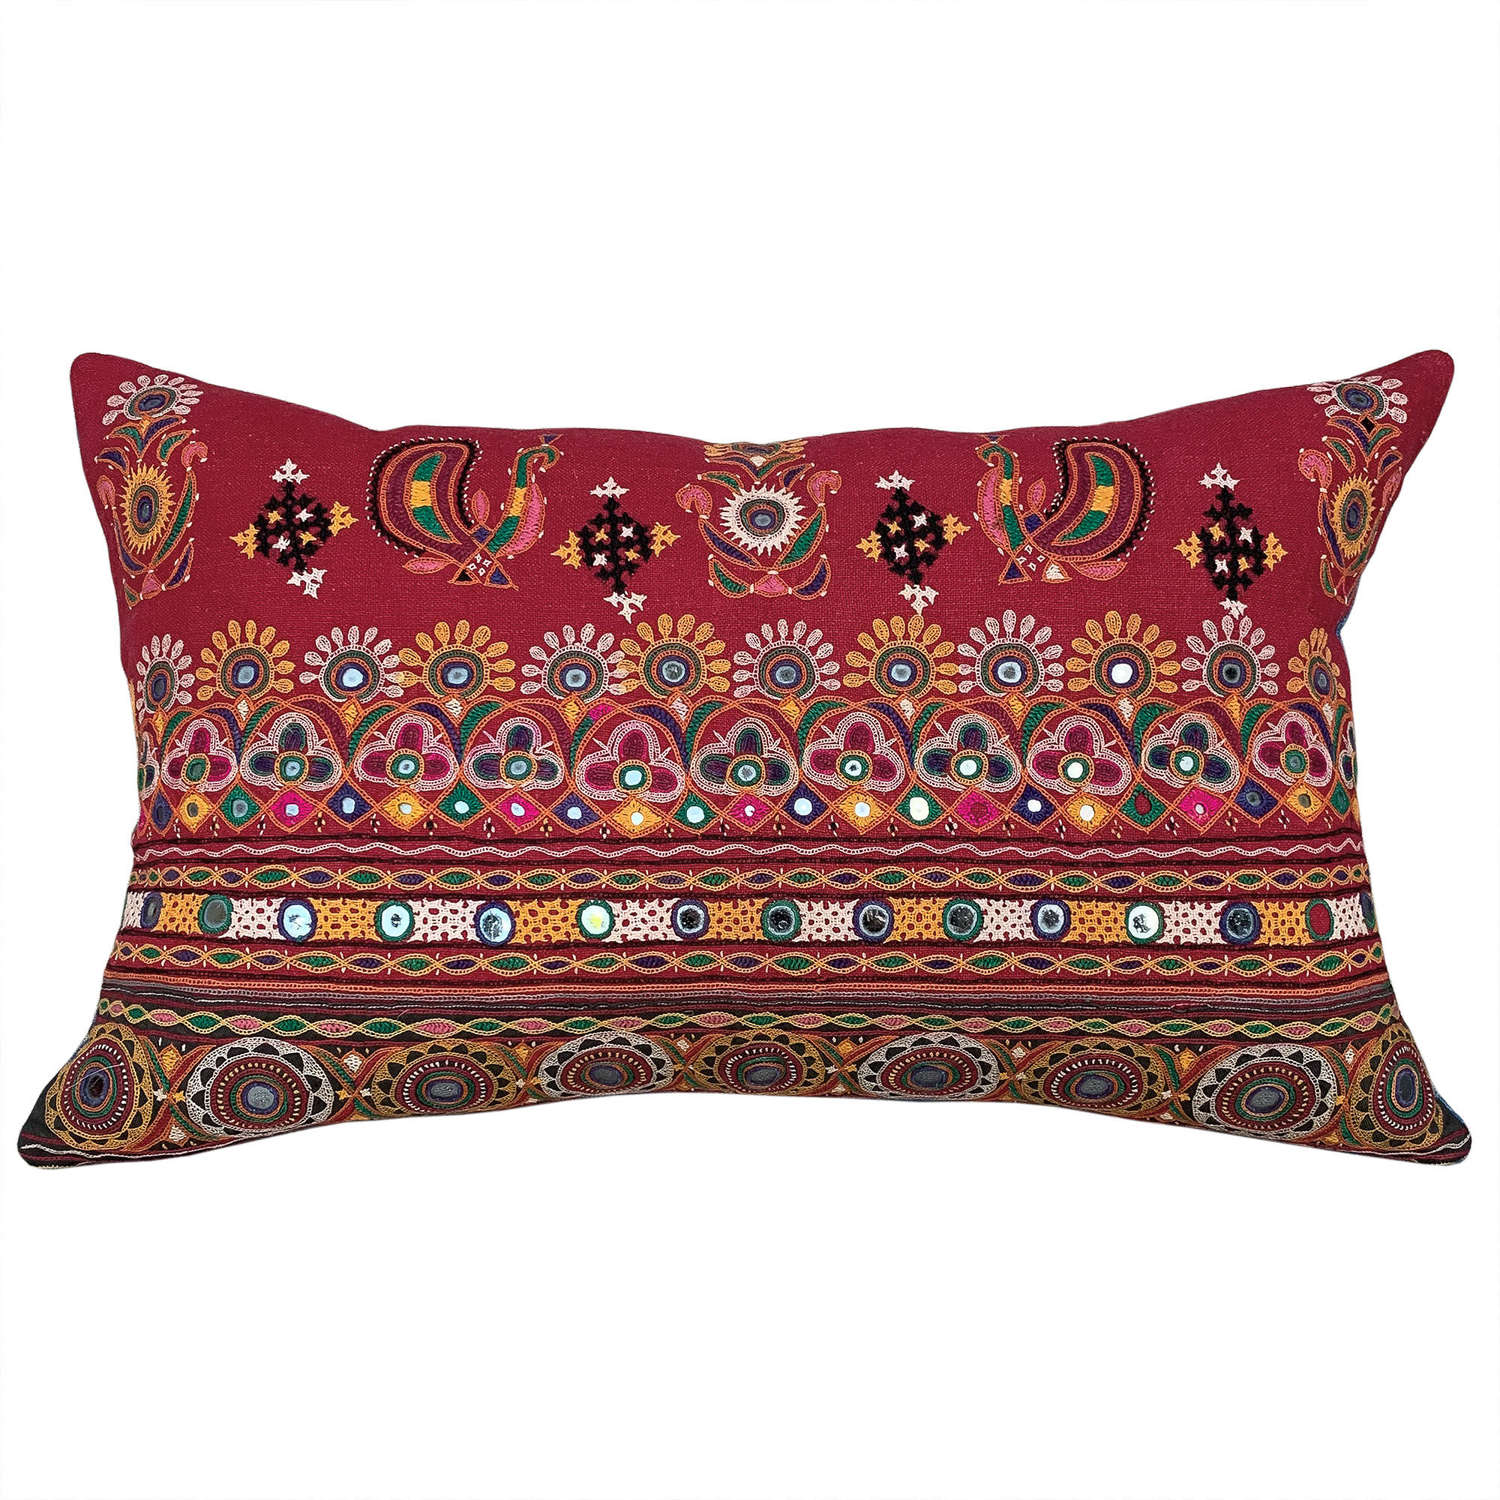 Ahir dowry bag cushion